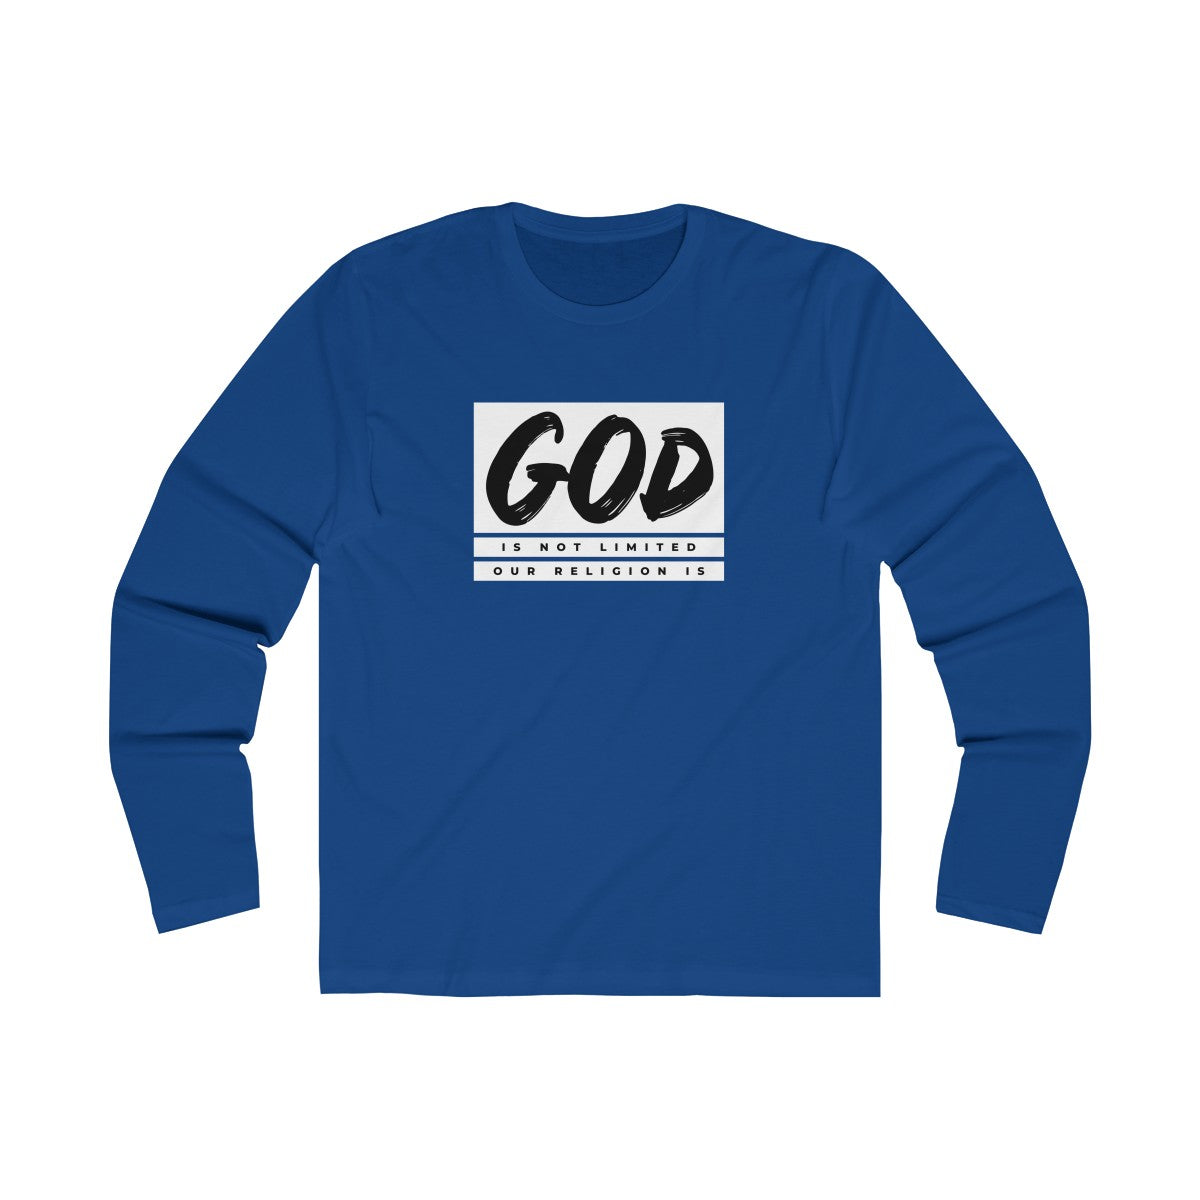 God Is Not Limited Our Religion Is Men's Long Sleeve Crew Tee